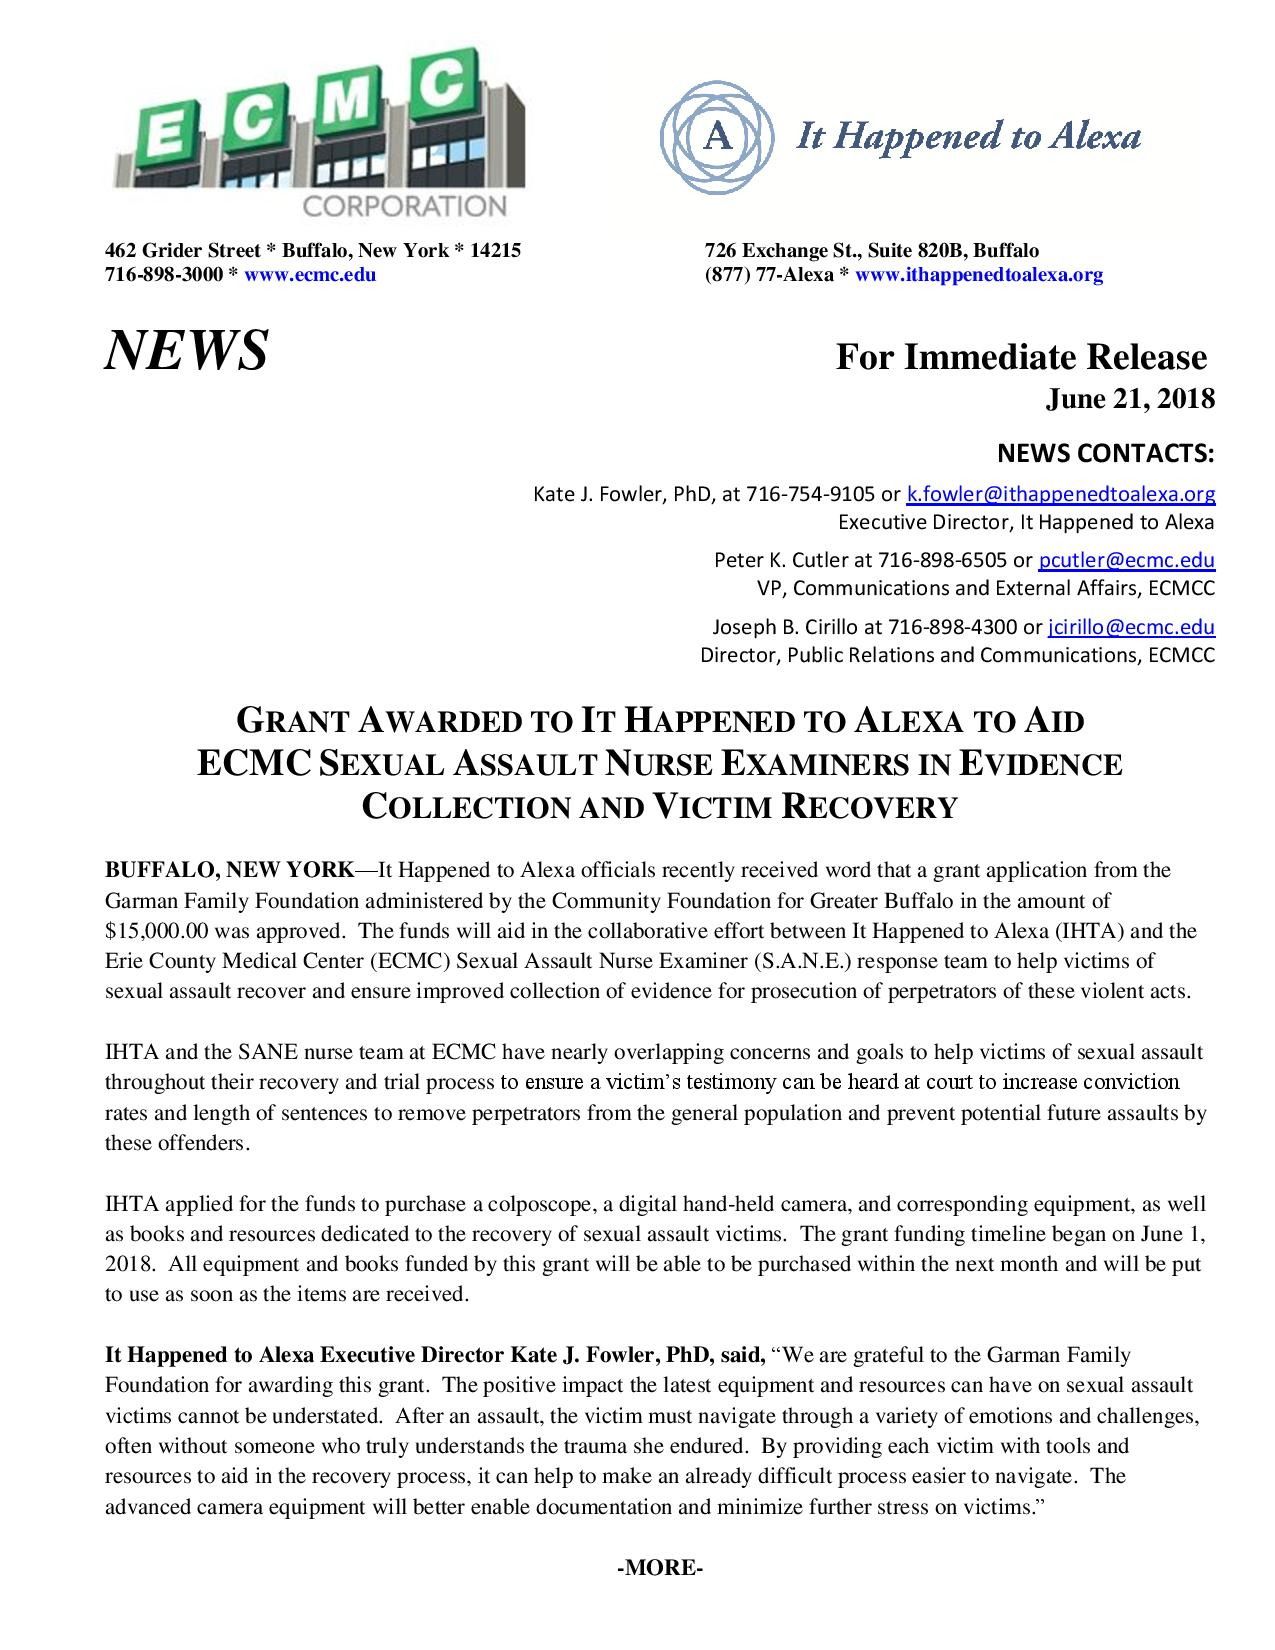 IHTA-ECMC-Garman Press Release